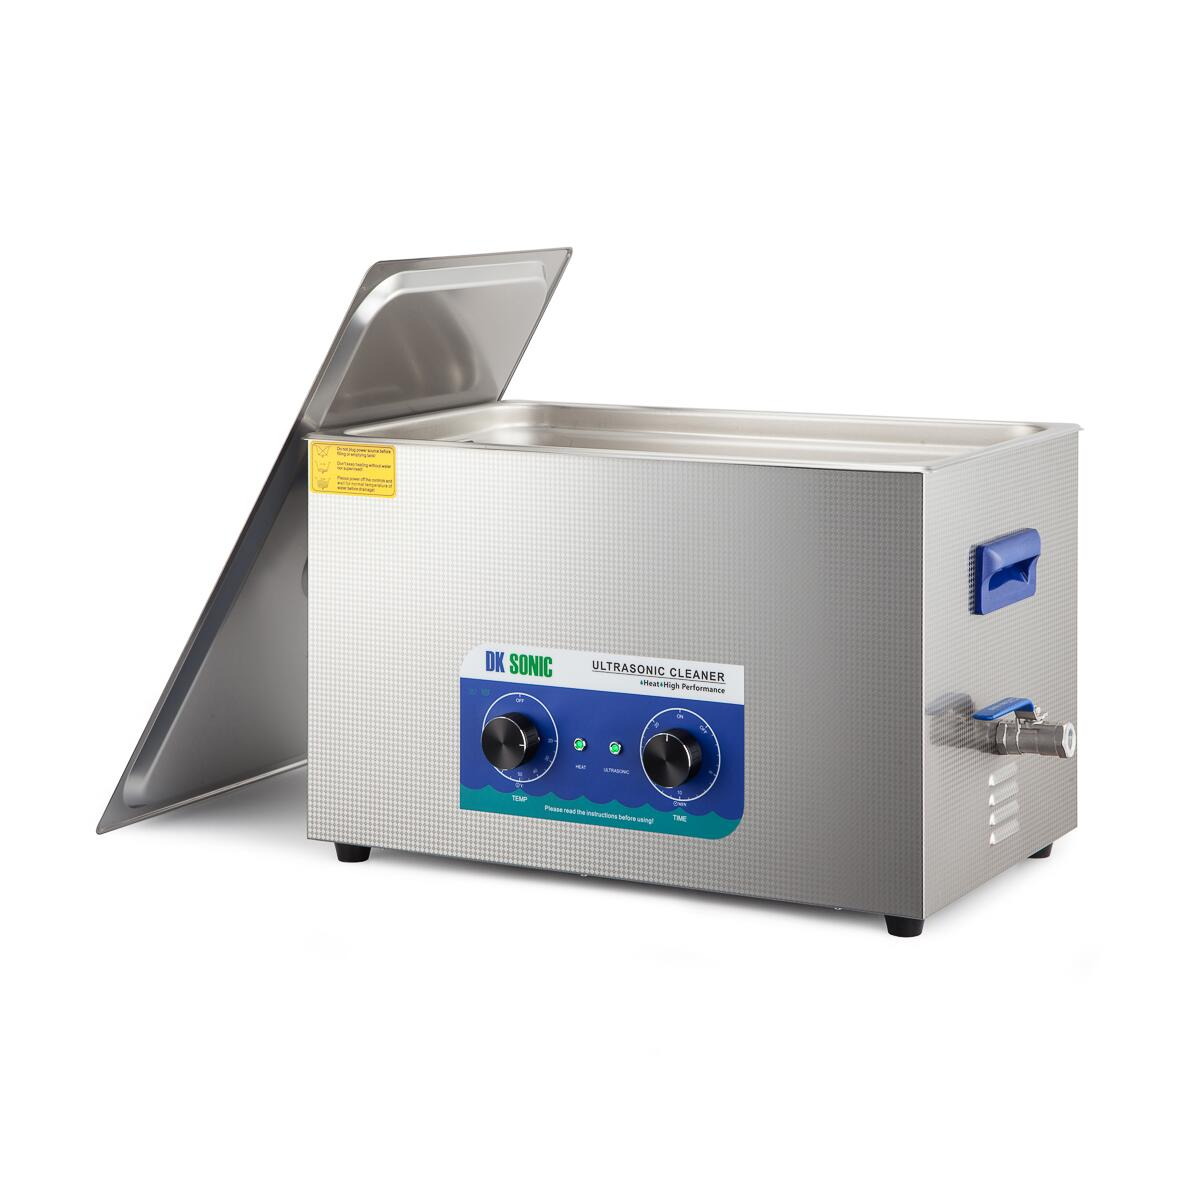 Best Ultrasonic Cleaners Ltd 5 star review on 7th July 2021